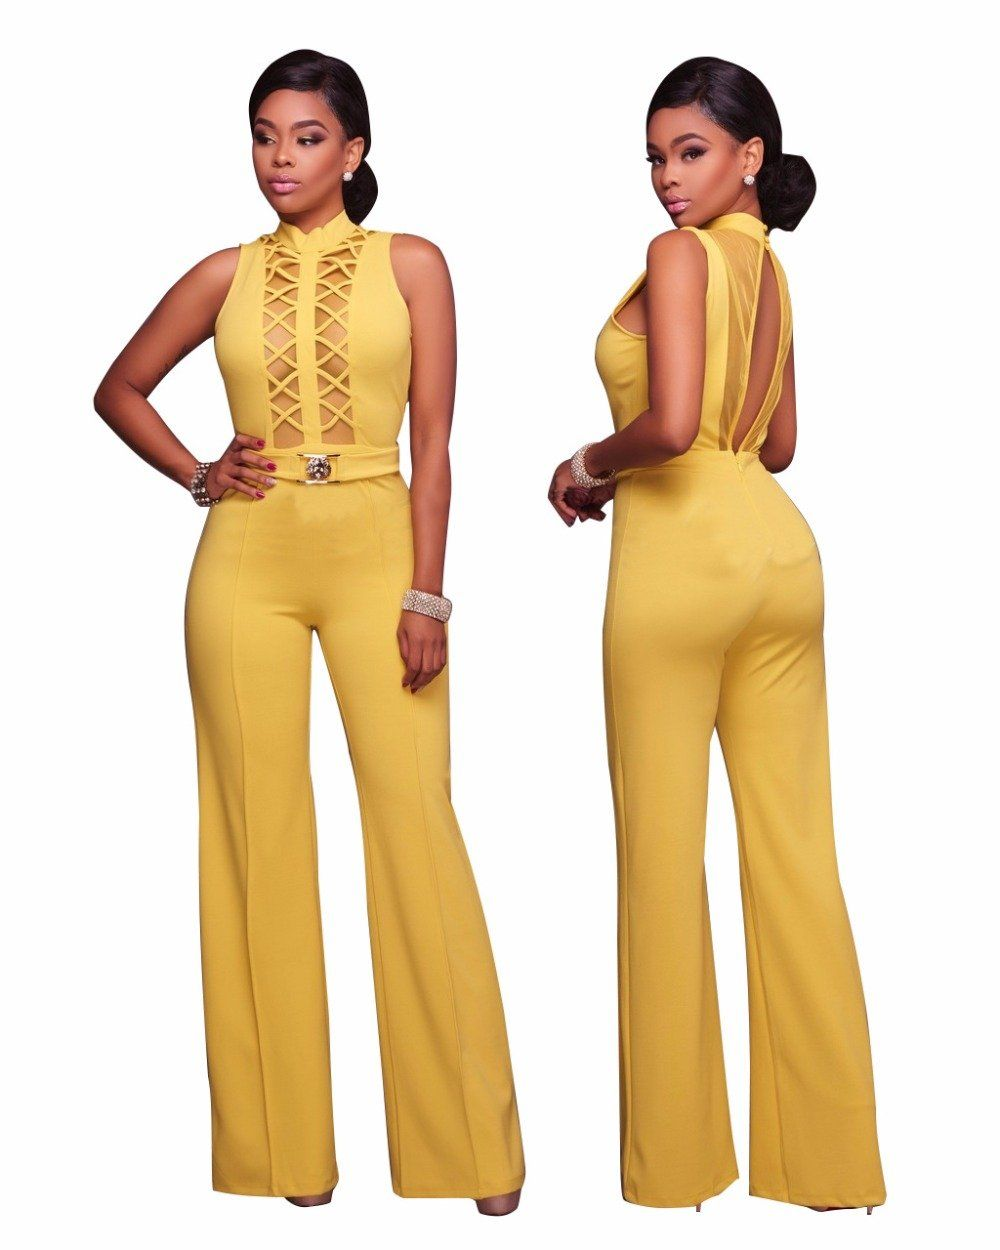 ffe987f0326 New Design Front Hollow Out Sexy High Neck Women Skinny Bodysuits Women  Jumpsuits